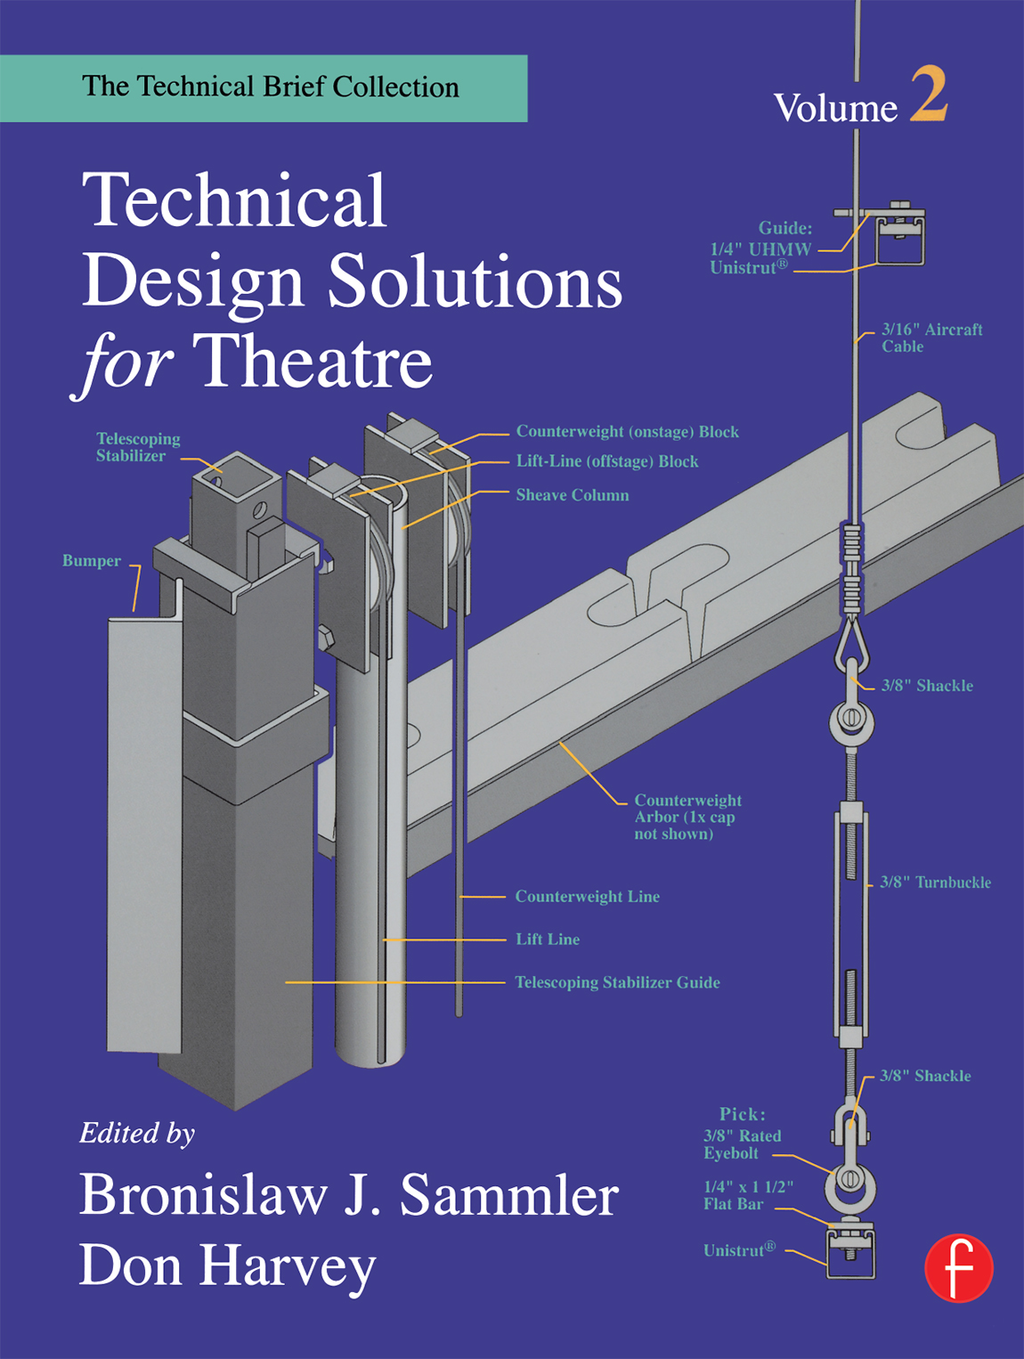 Technical Design Solutions for Theatre The Technical Brief Collection Volume 2